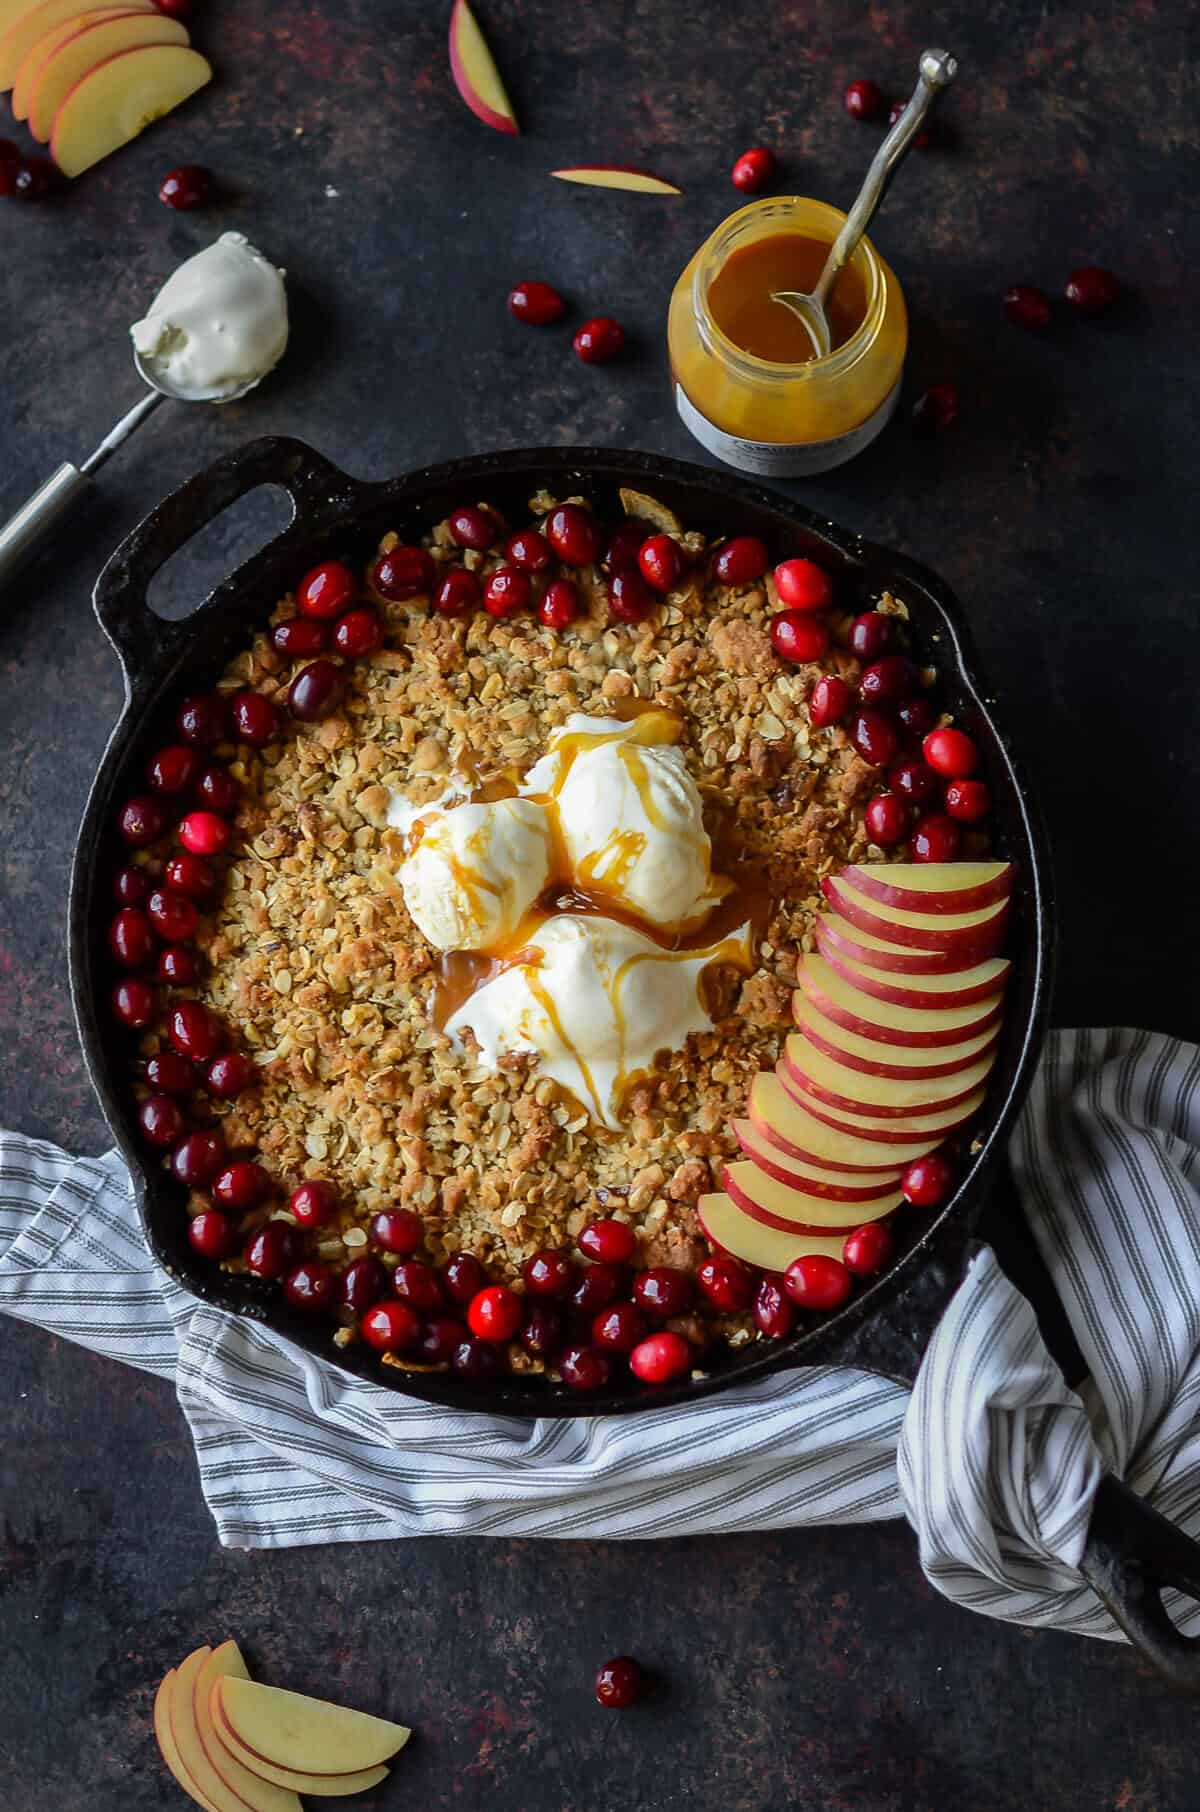 cast iron skillet filled with maple apple crisp and topped with fresh cranberries, apple slices and vanilla ice cream drizzled with caramel sauce